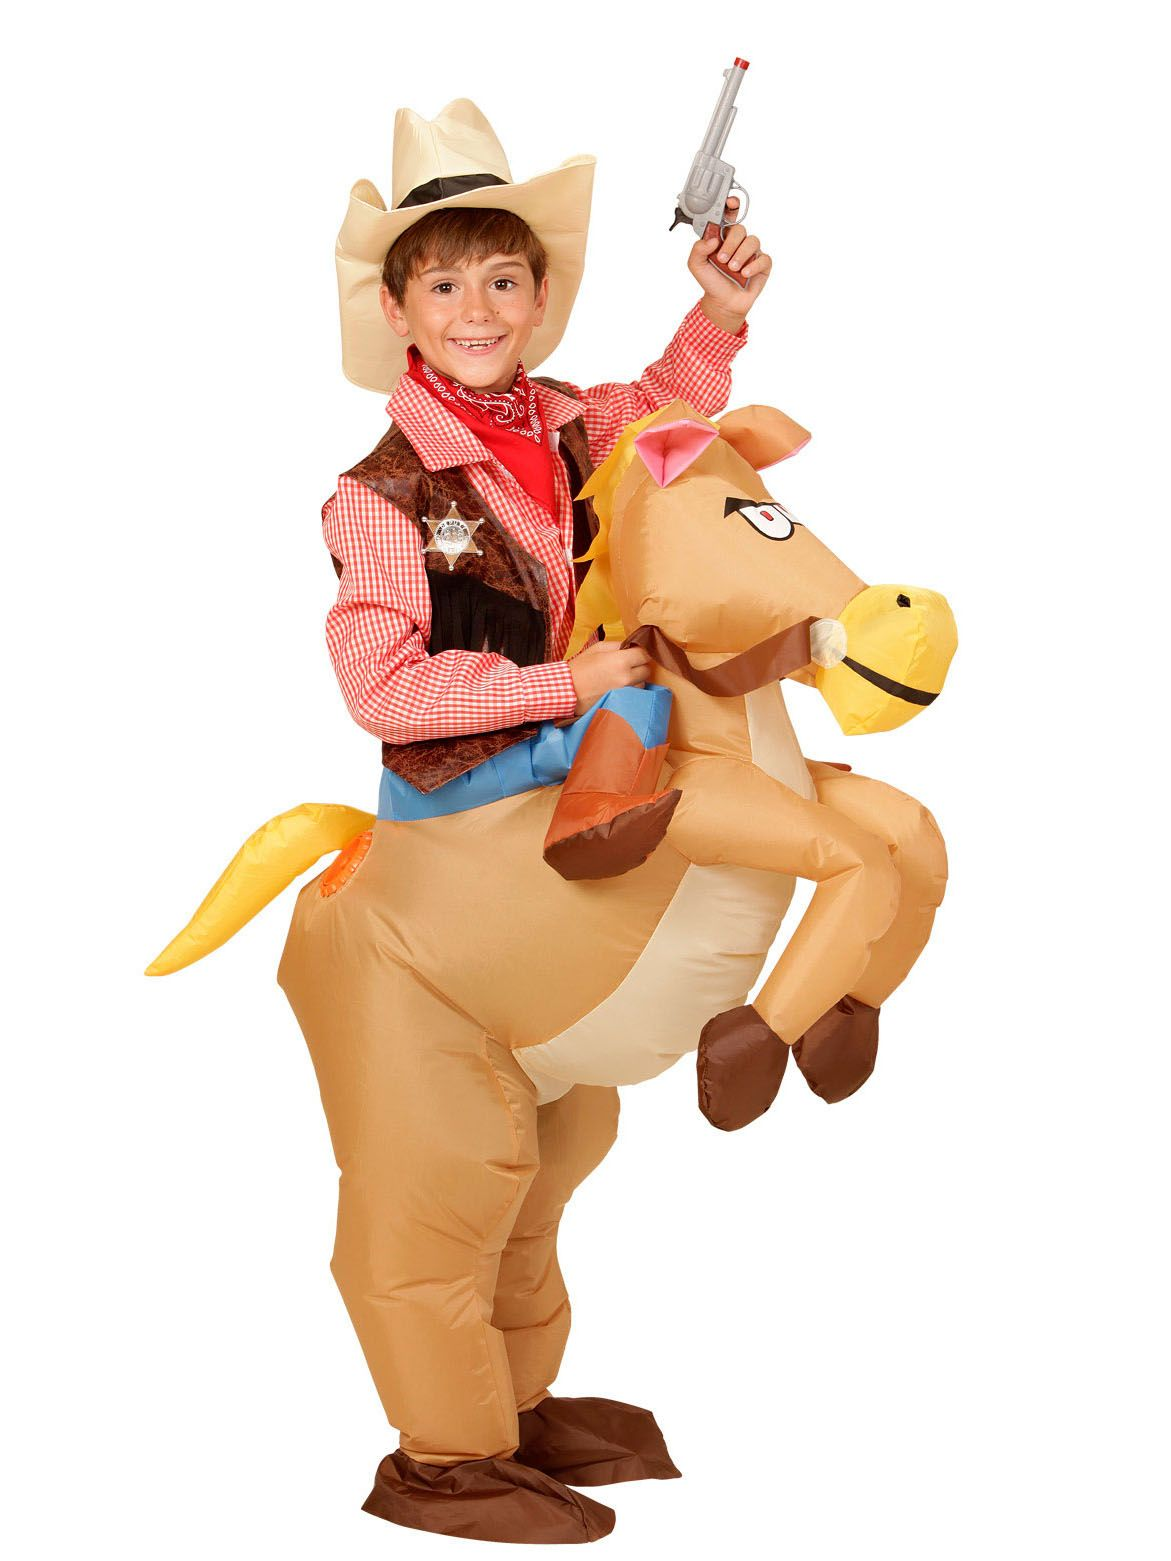 35d19670c181ad Inflatable cowboy on horse costume for kids  This inflatable outfit for  kids consists of a horse costume and hat (cowboy outfit and gun not  included).